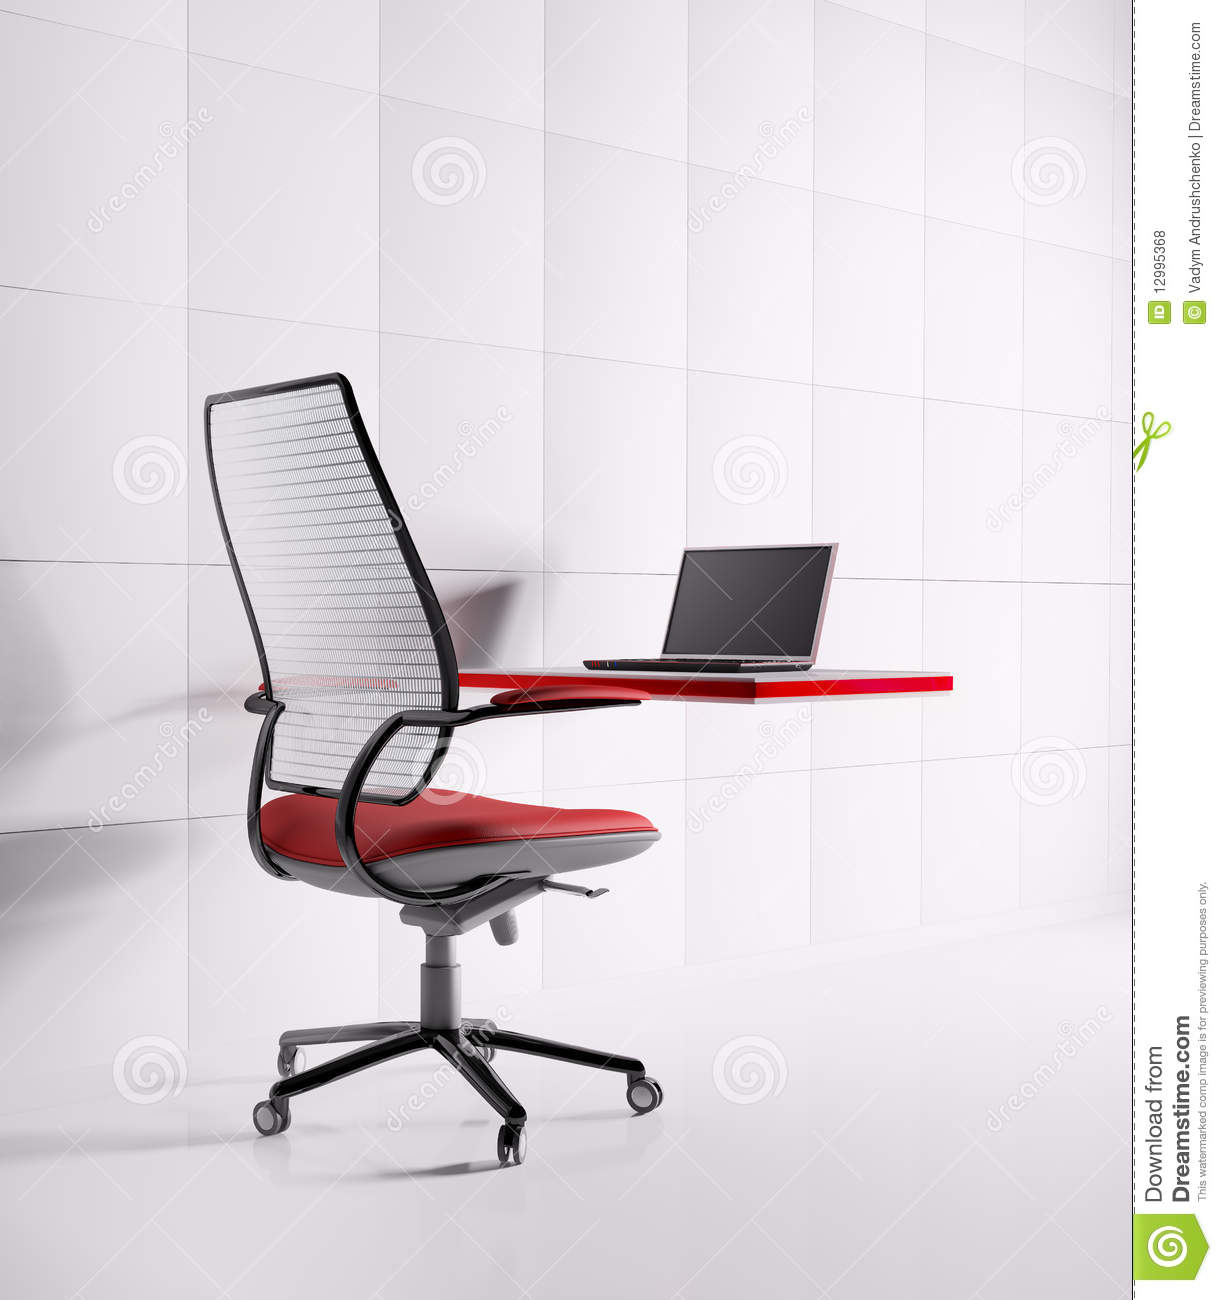 Laptop Chair Desk Workplace Laptopchairtable Royalty Free Stock Photos Image